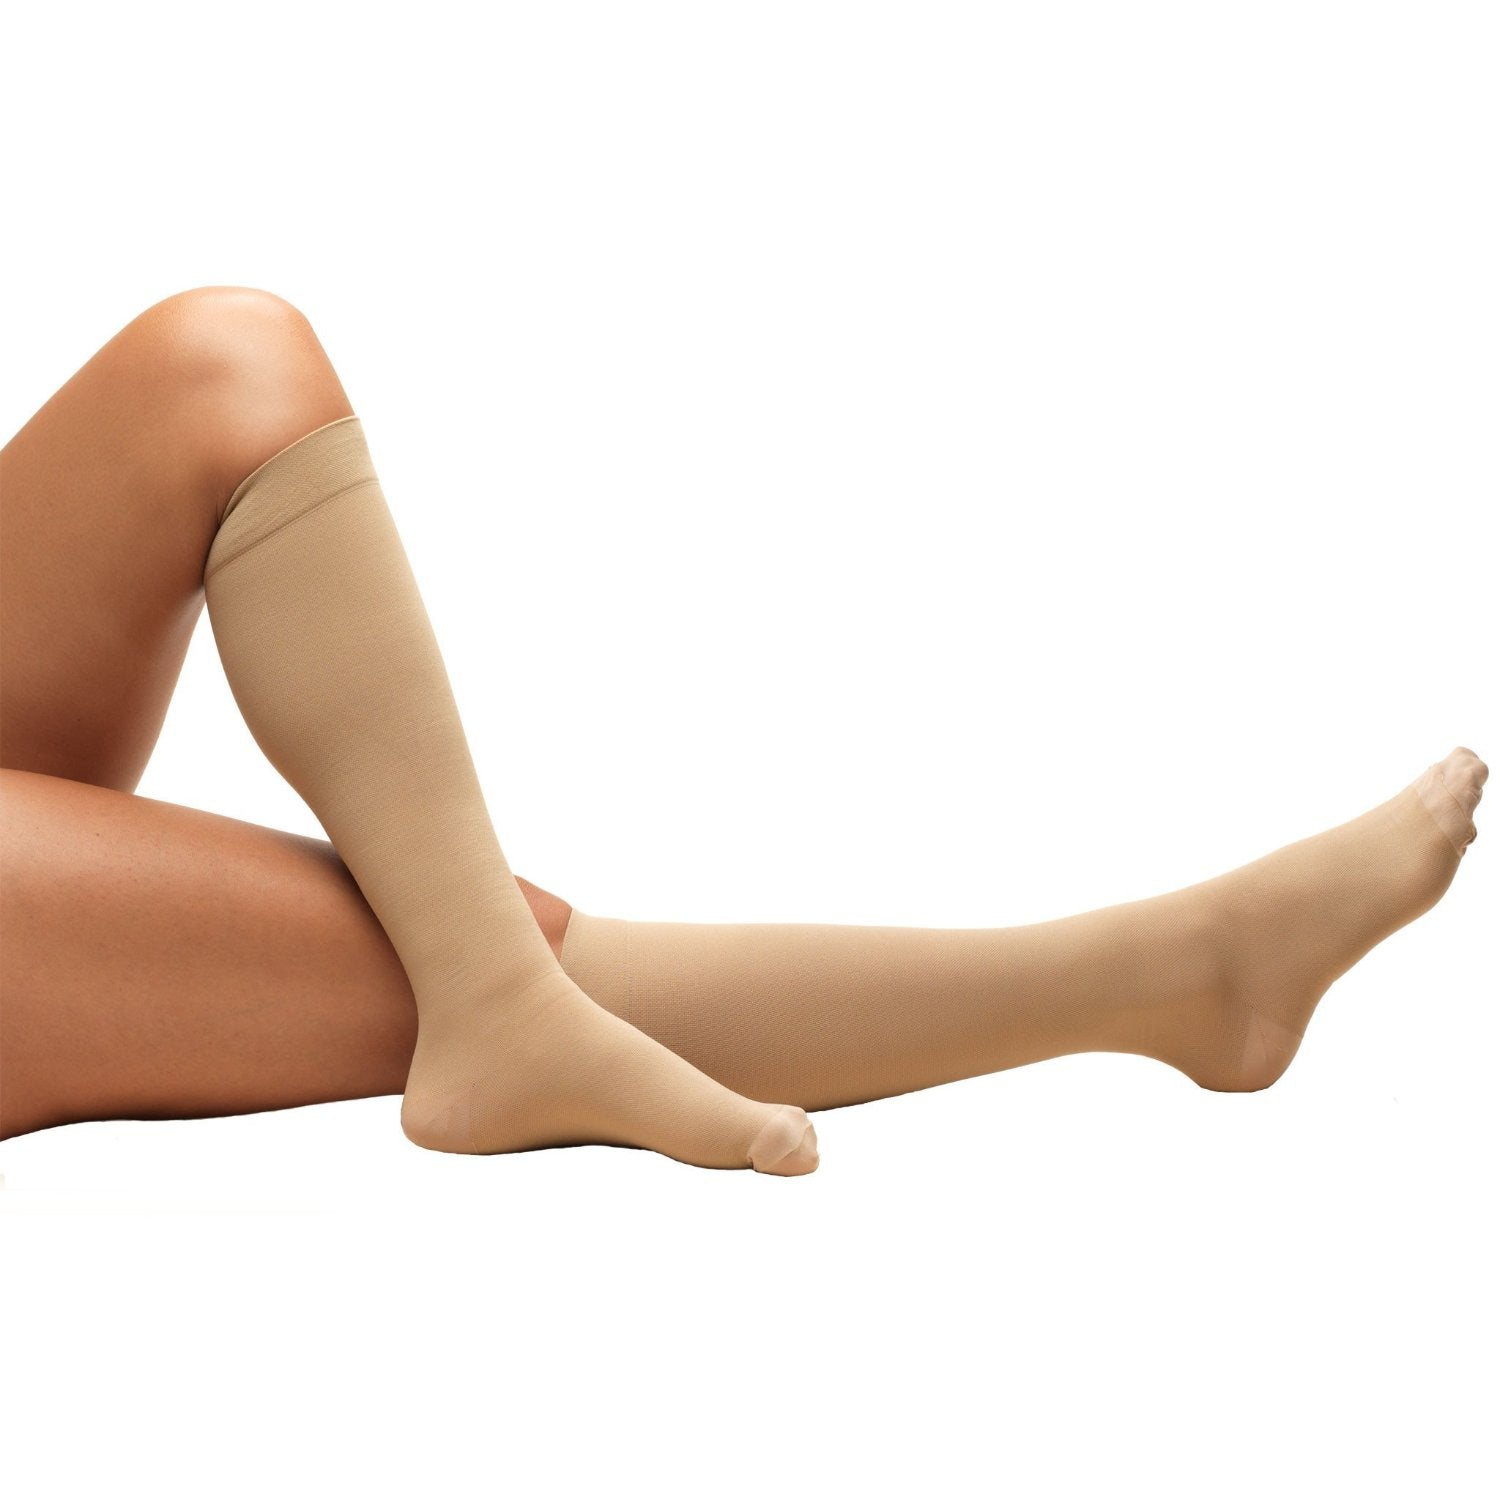 Beige 8808 Knee High Closed Toe Beige Anti-Embolism Stockings